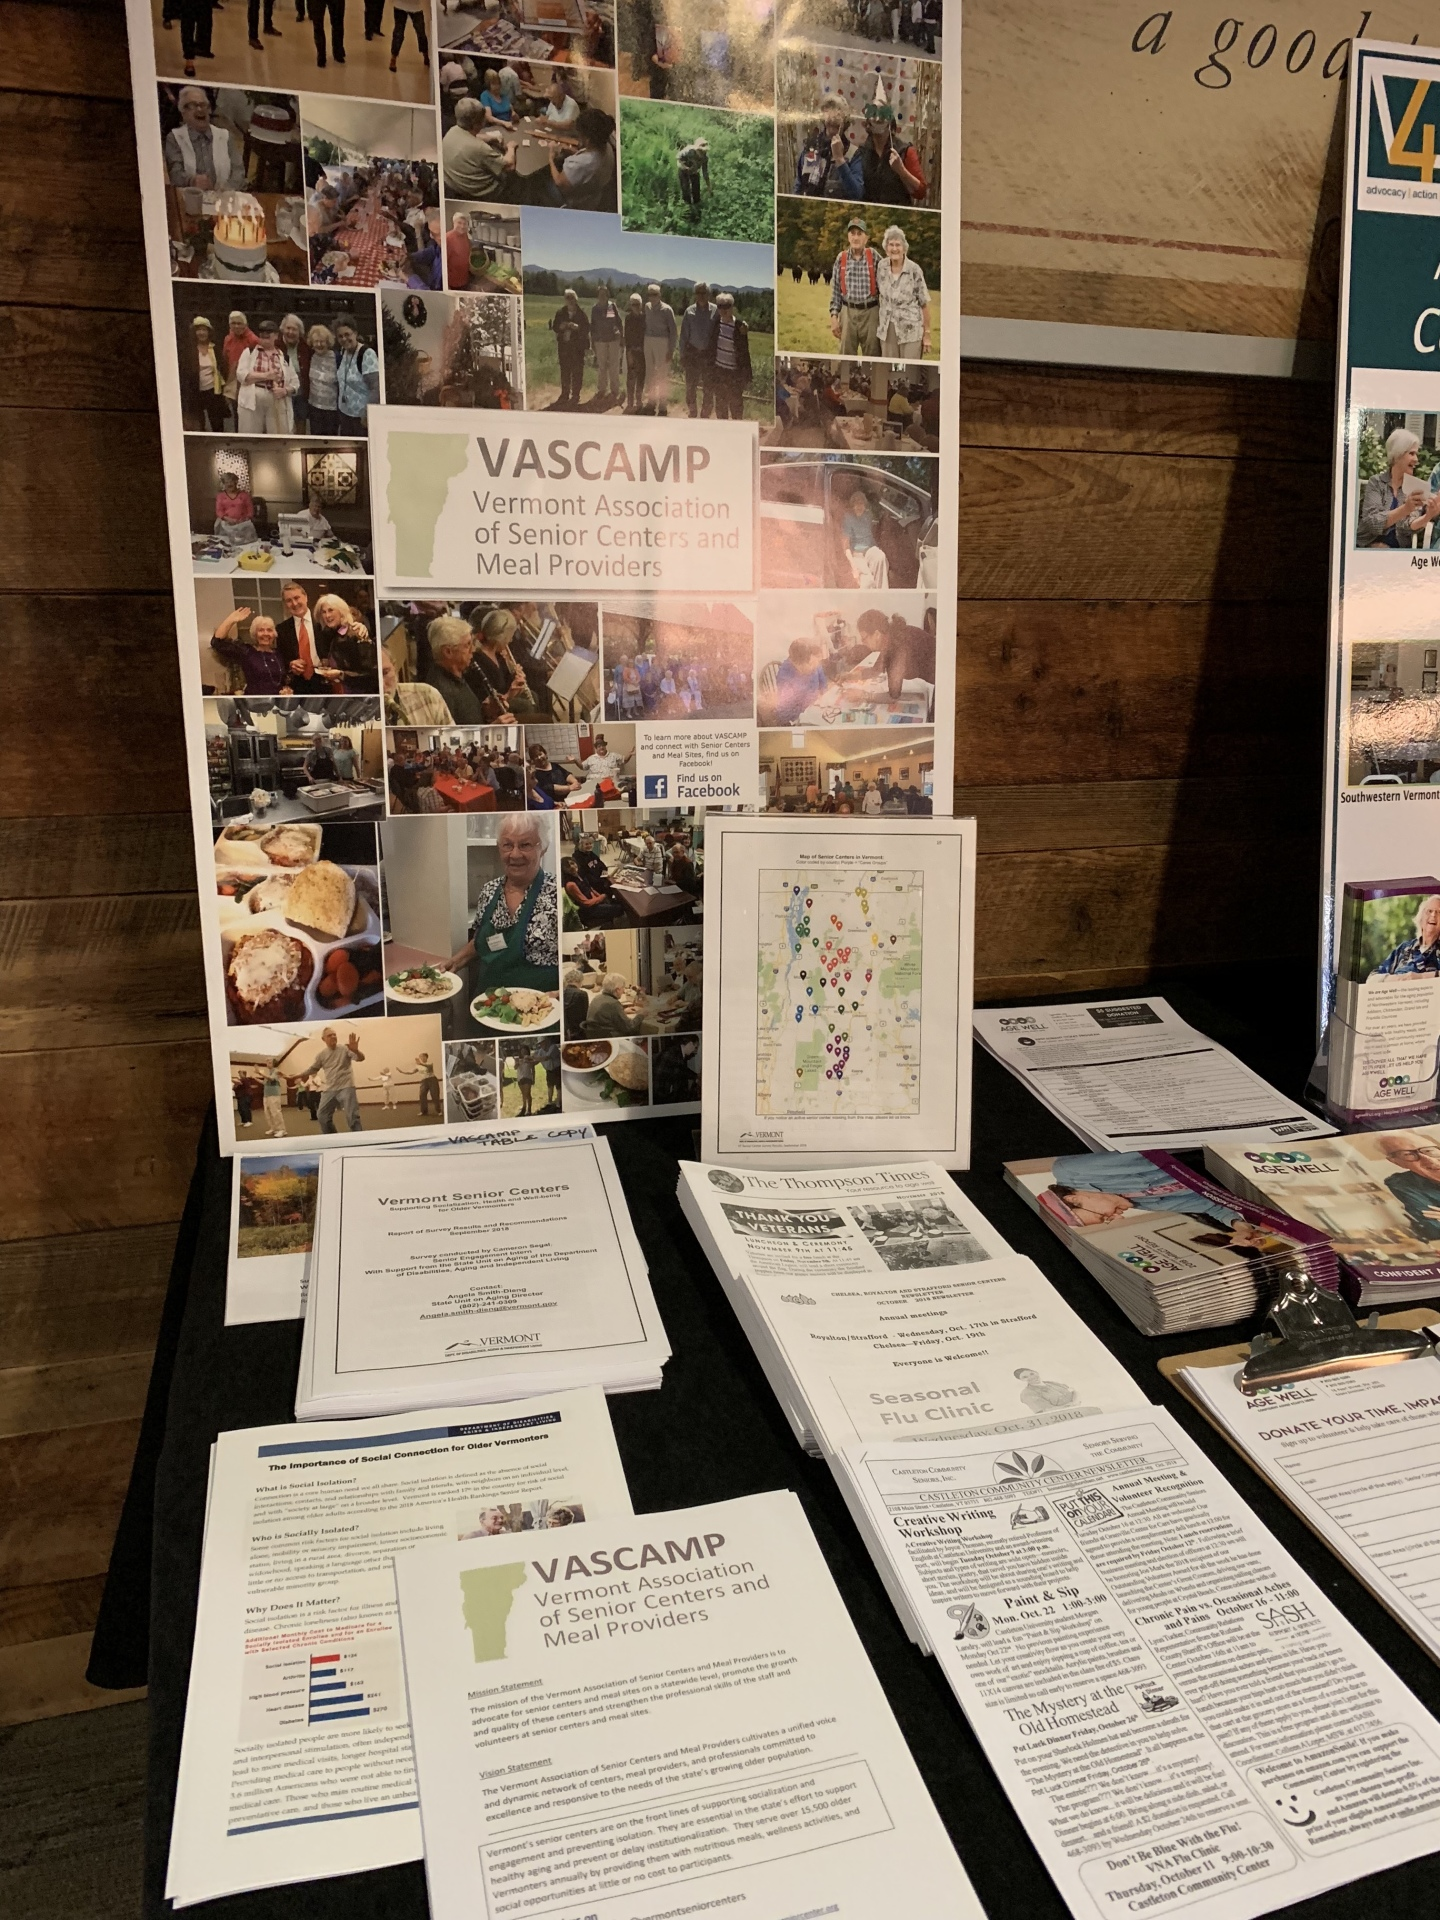 Vermont Association of Senior Centers and Meal Providers - Display